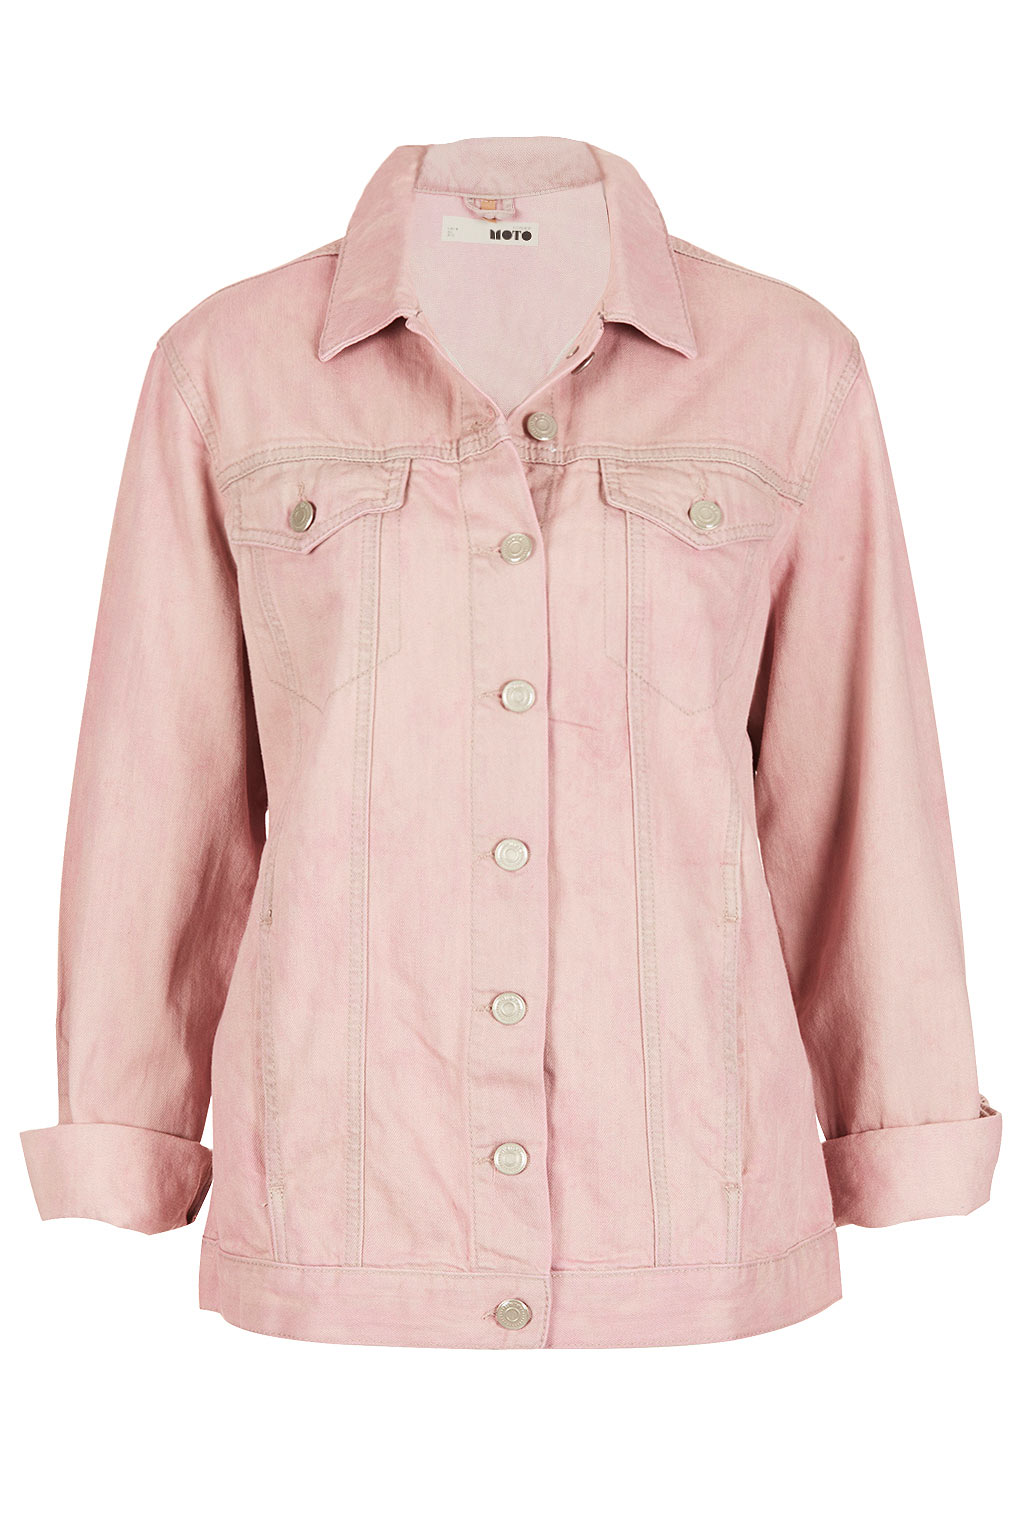 Topshop moto heart flag western jacket in pink lyst for Womens denim shirts topshop